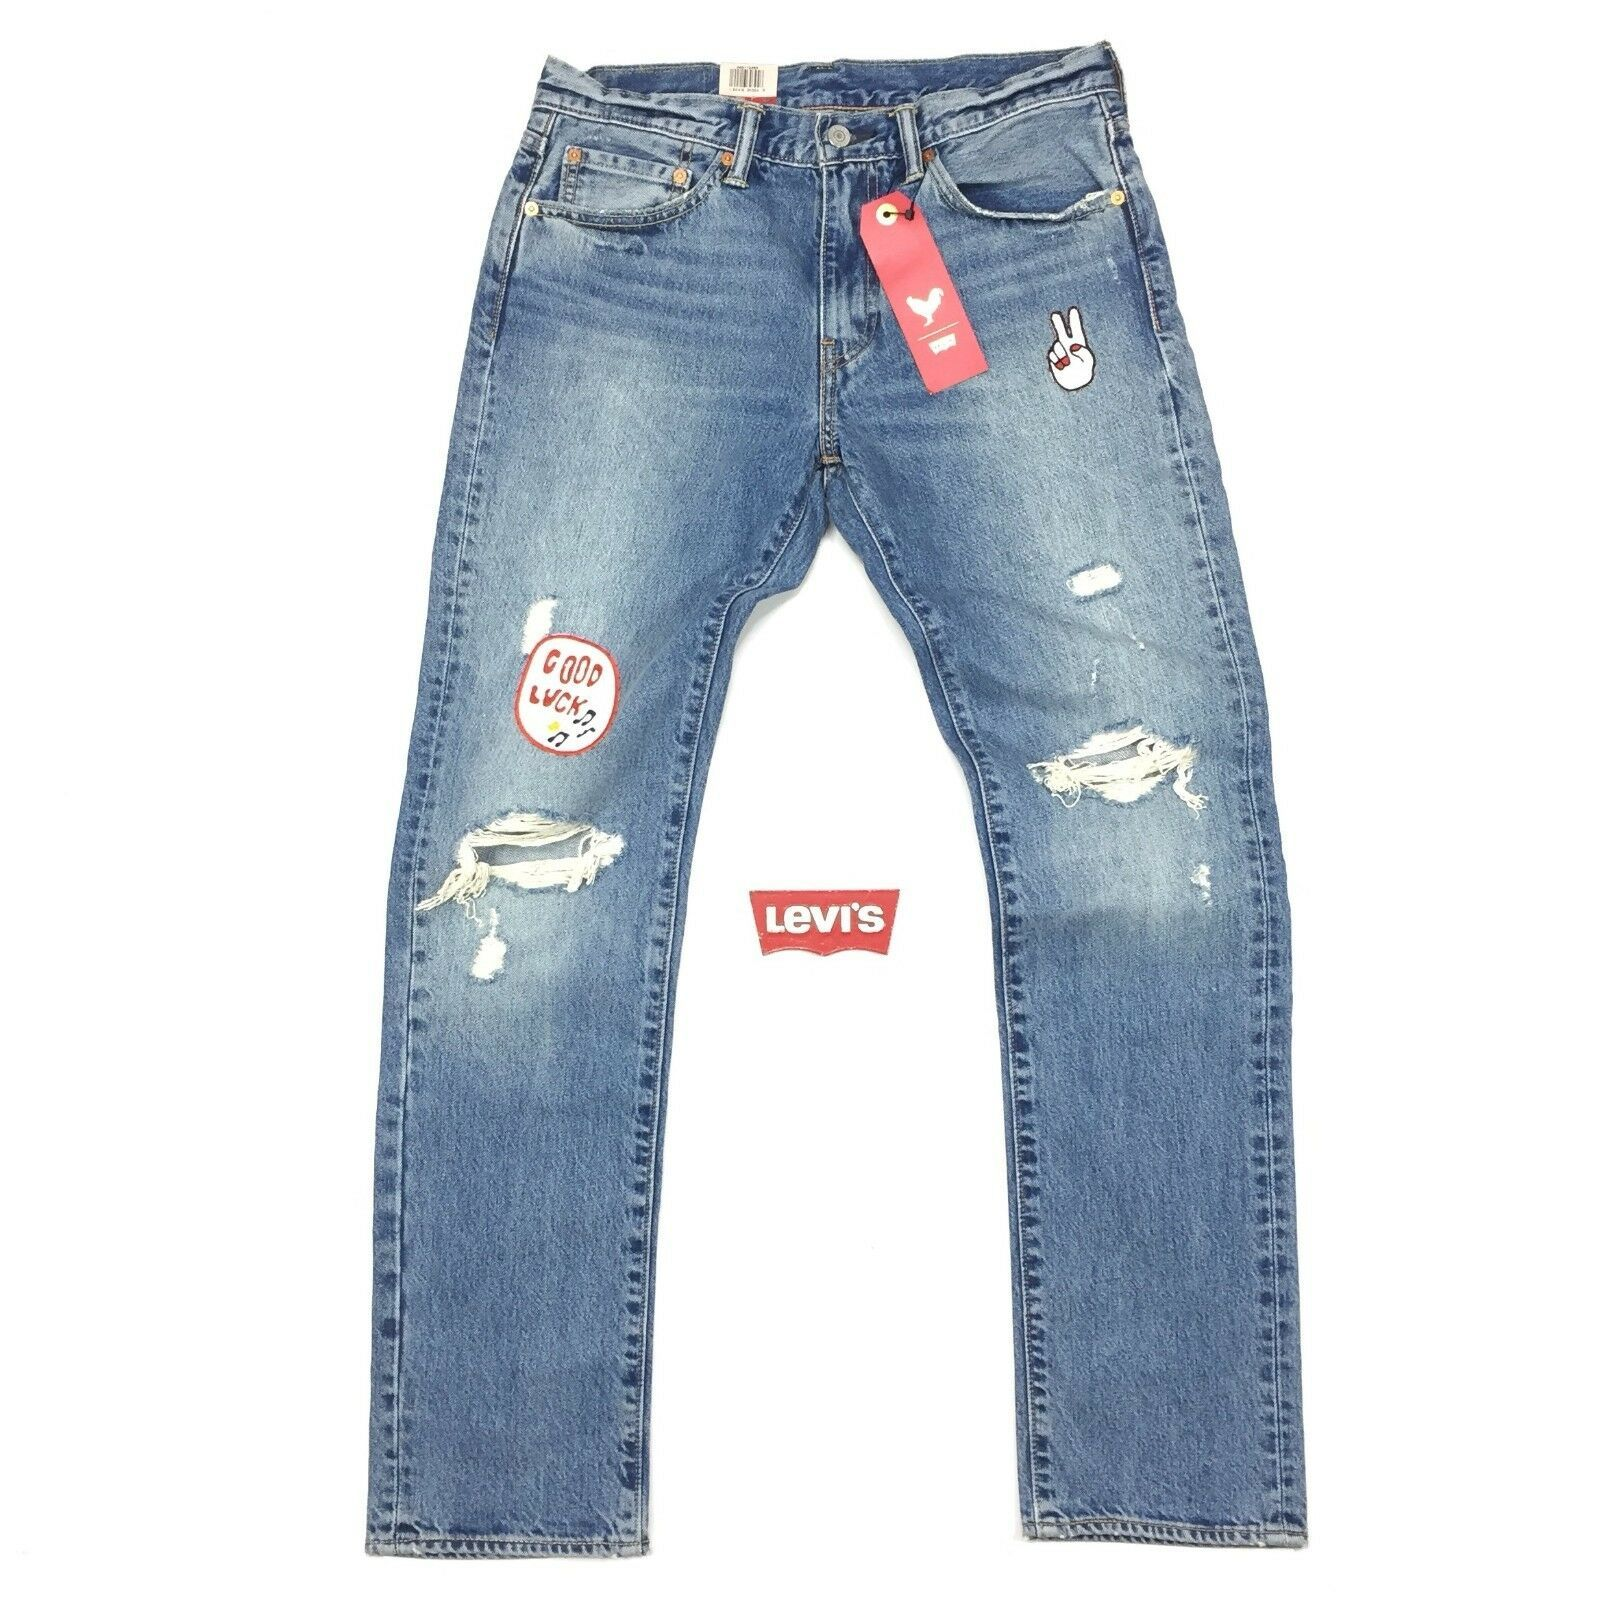 Primary image for New Levi's 511 Slim Fit Jeans ALL SIZES Broken Record Chinese New Year Patches